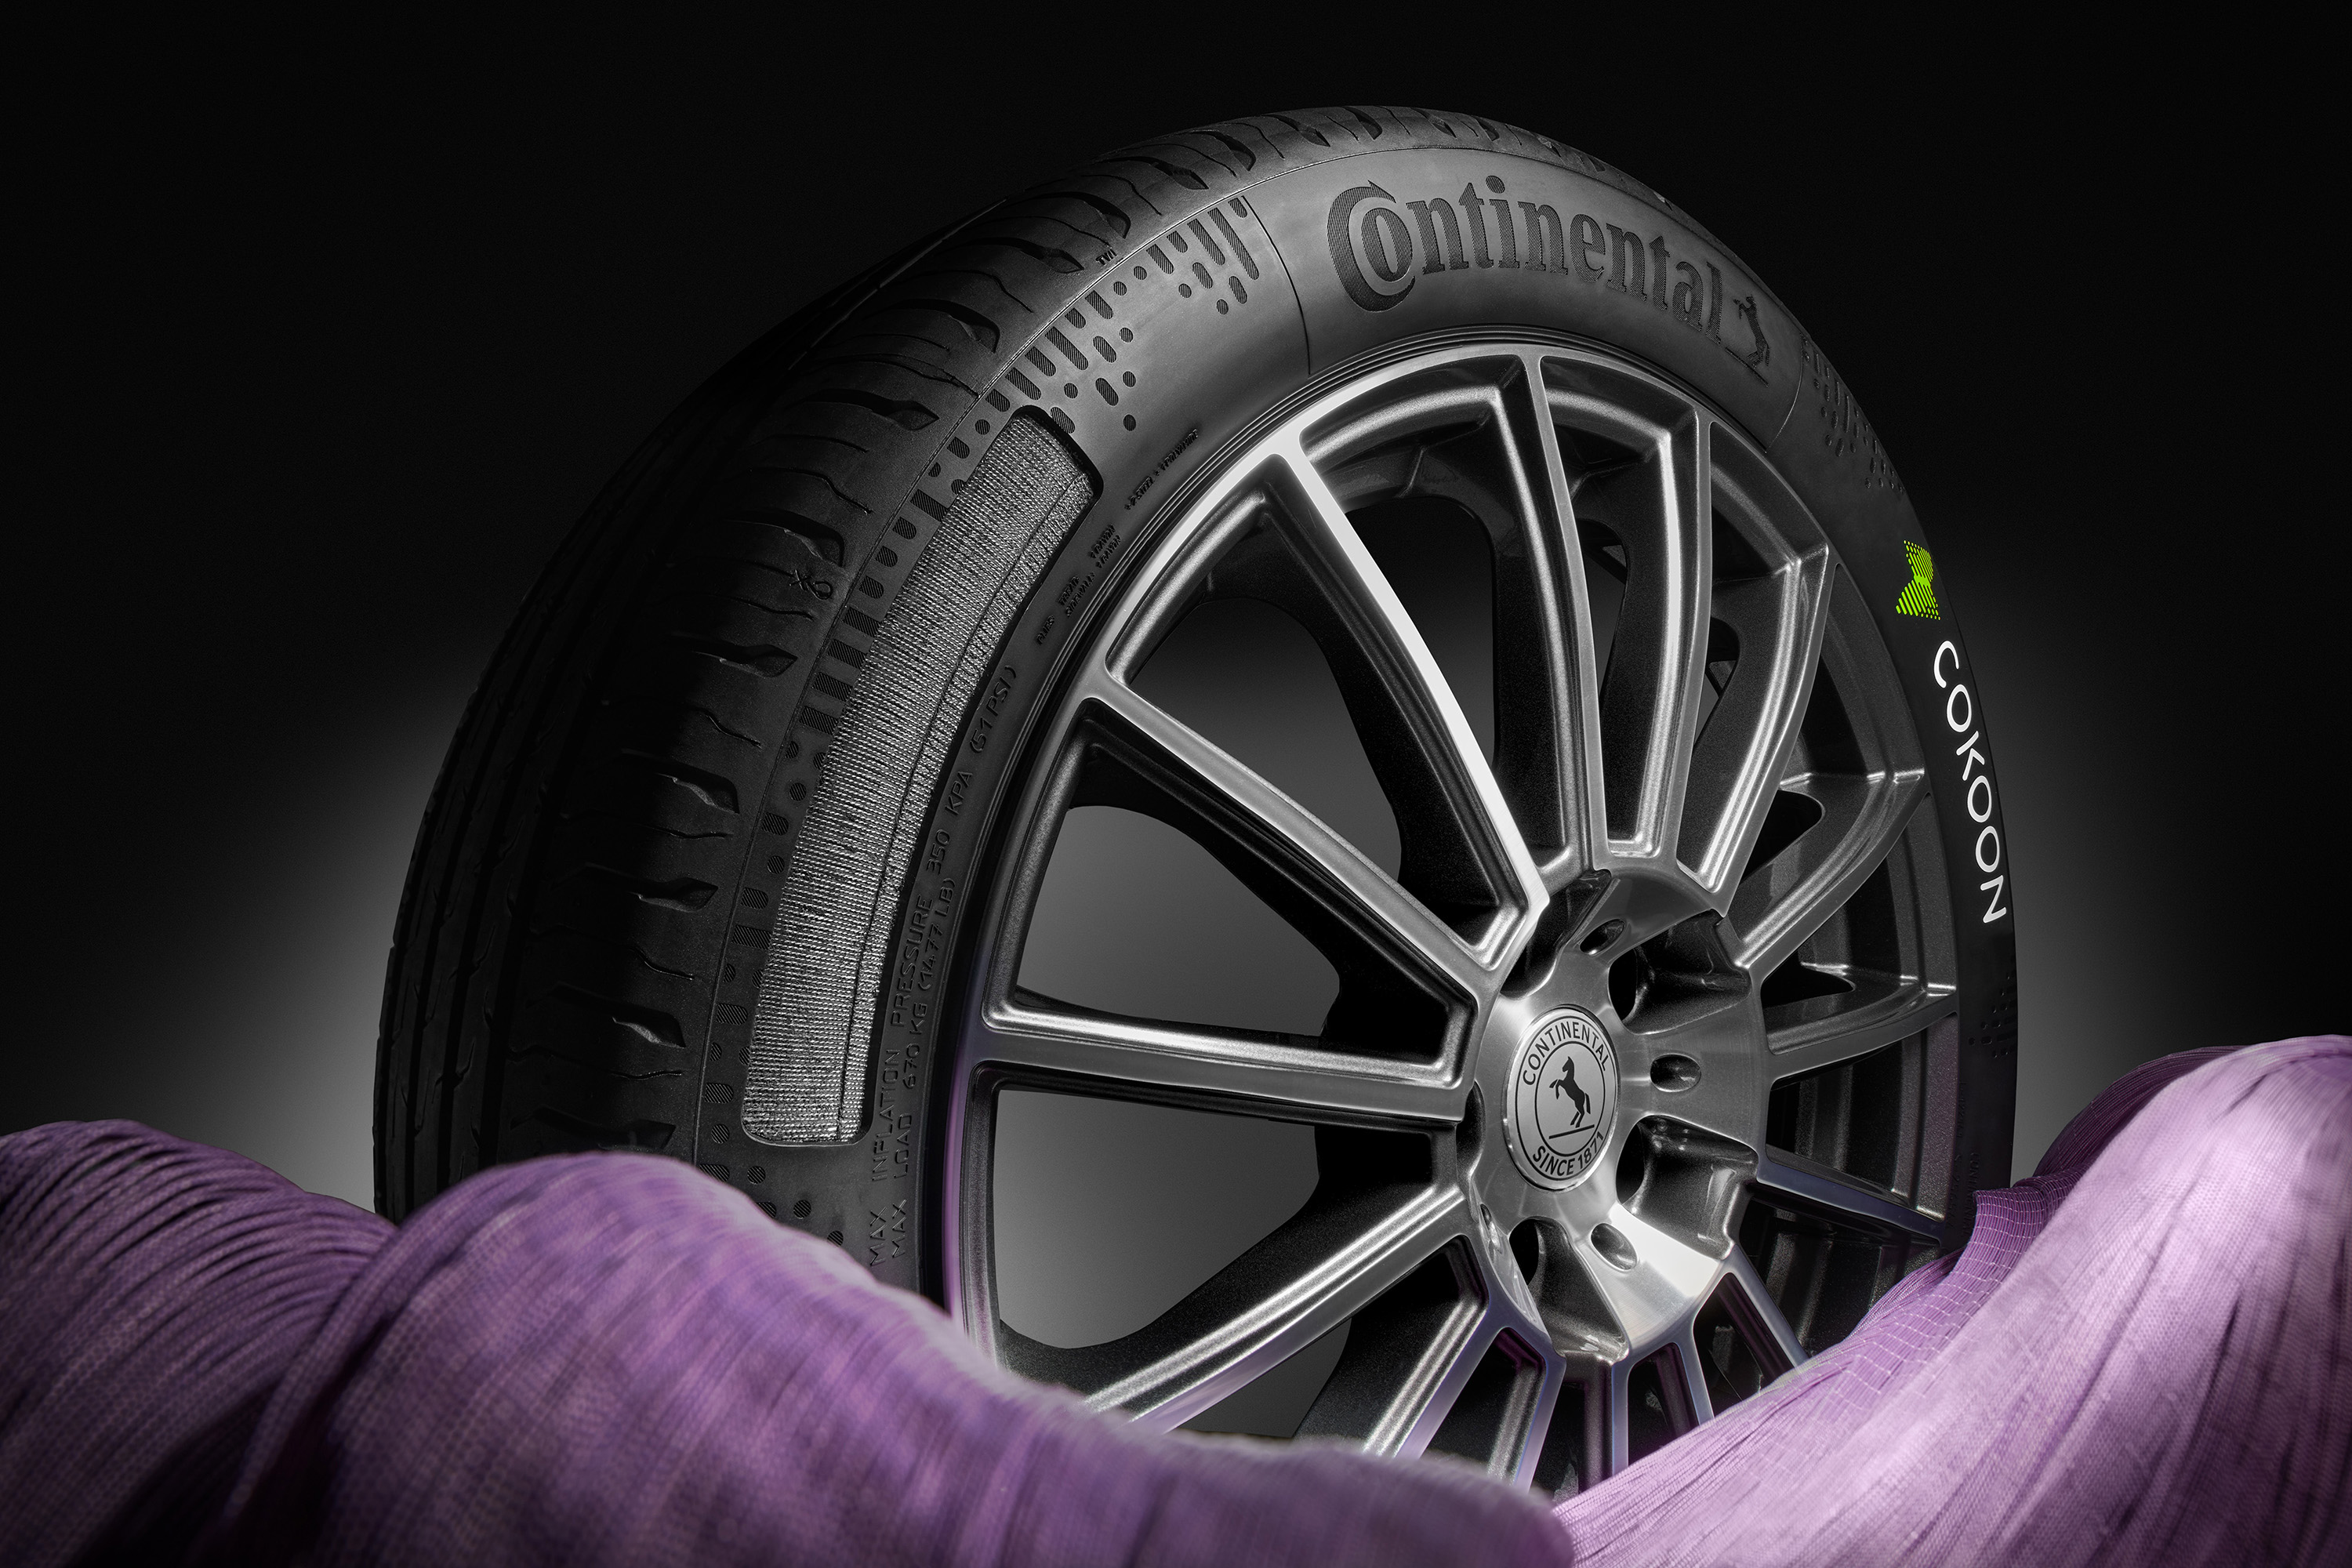 Сontinental and Kordsa bring first series tyres with Cokoon dip technology onto the road